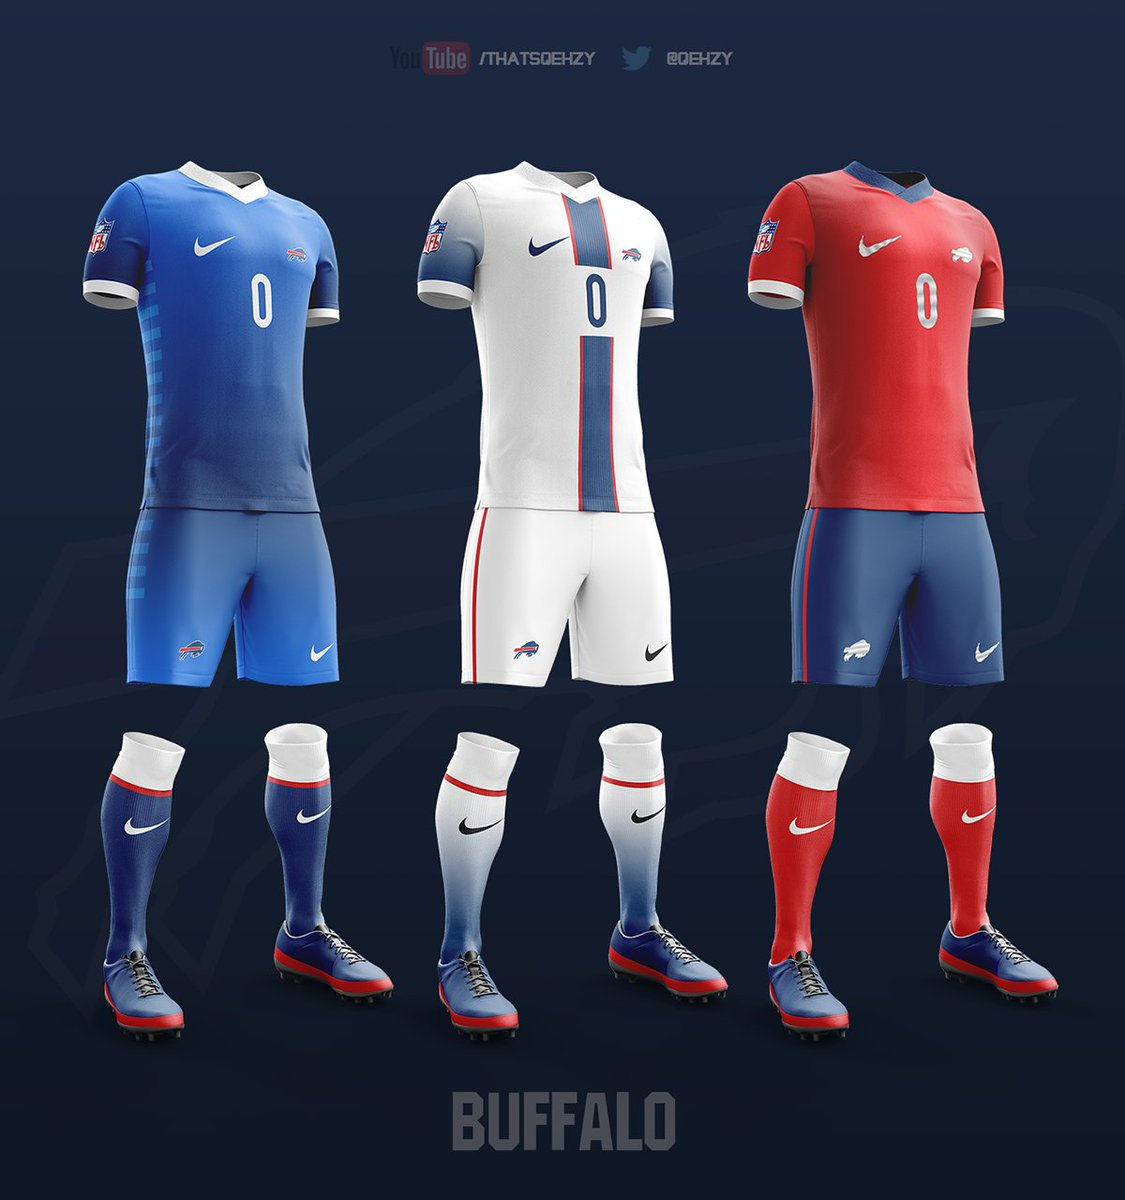 COPA90 on Twitter: quot;Some more NFL x Football Kits from @Qehzy xd83d;xde0e; https://t.co/6EuHYm9WPW…